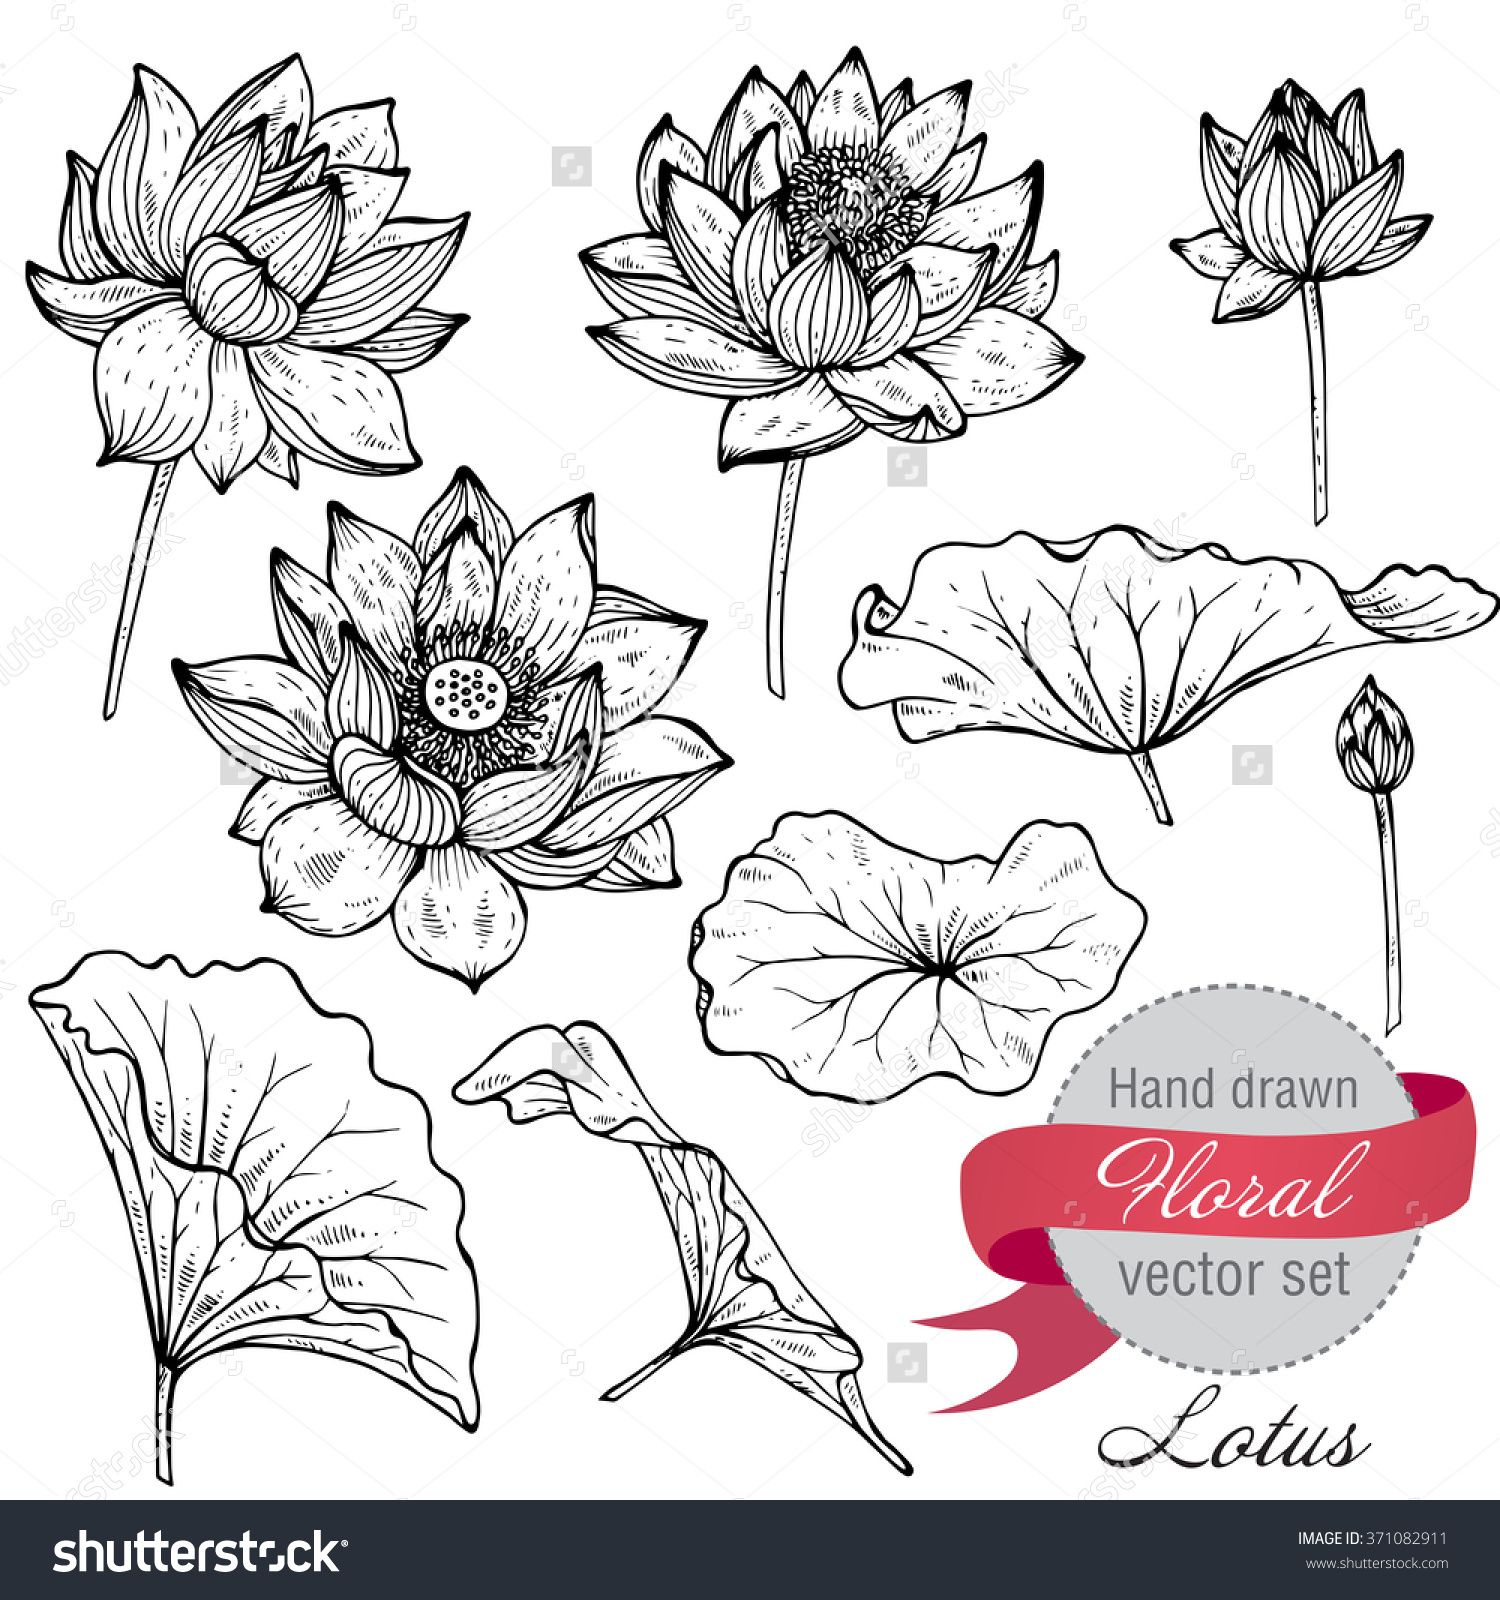 Vector set of hand drawn lotus flowers and leaves sketch floral vector set of hand drawn lotus flowers and leaves sketch floral botany collection in graphic izmirmasajfo Choice Image